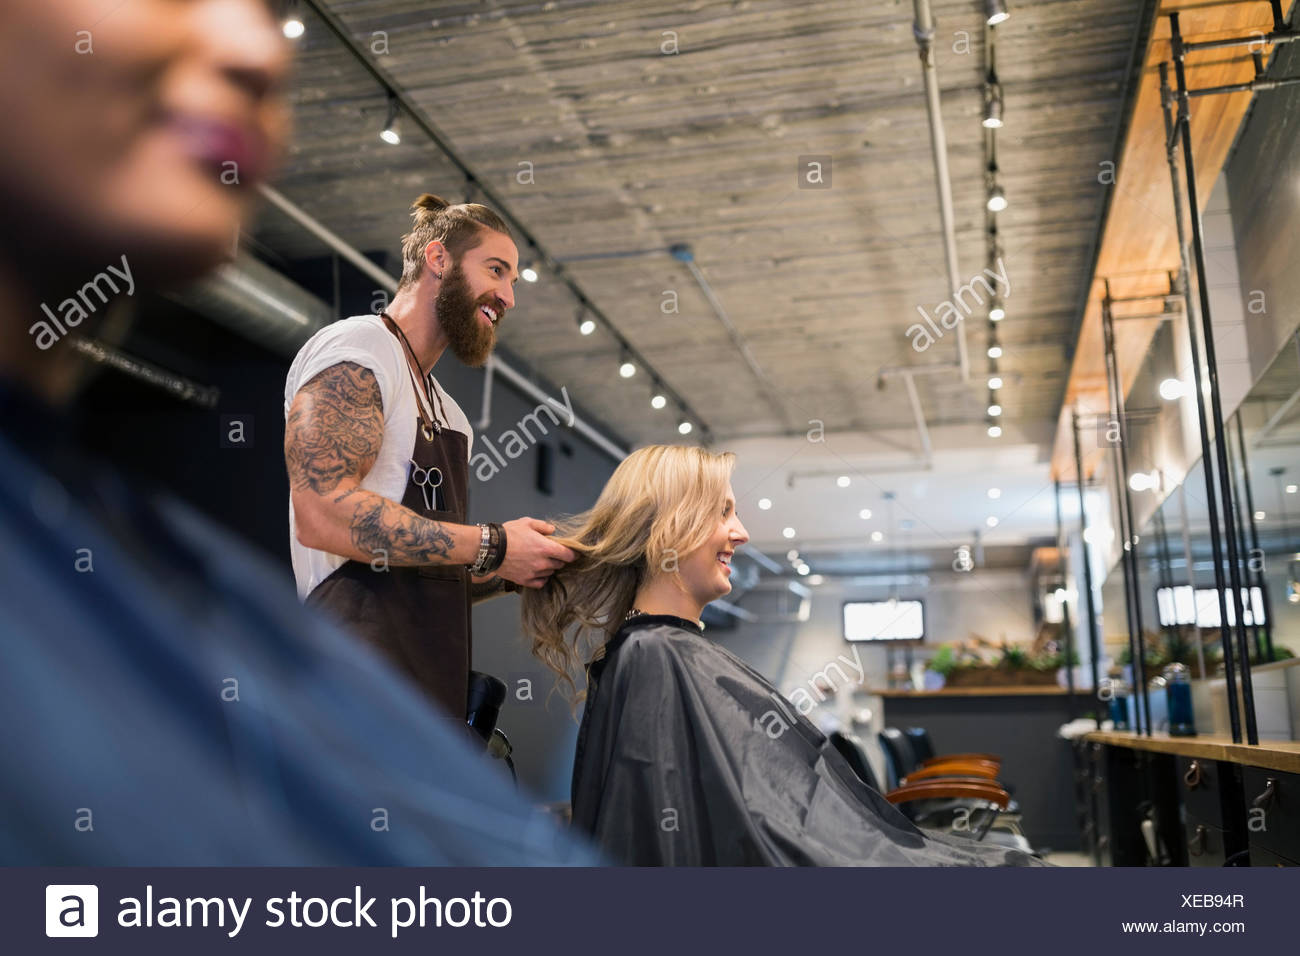 Male hairstylist styling womans hair in hair salon - Stock Image